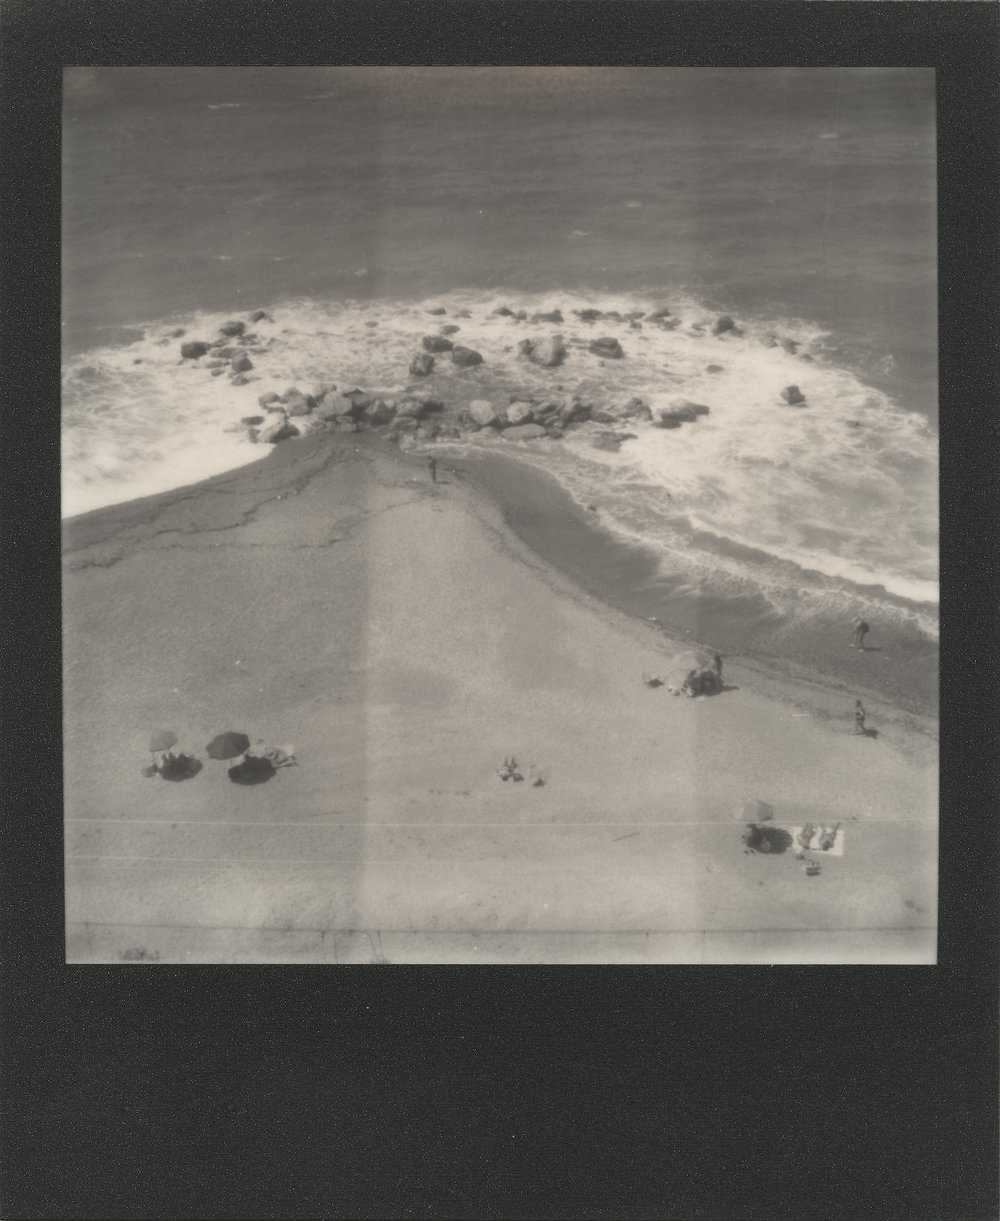 The Bathers Down There | Polaroid SLR680 | Impossible Project 600 B/W | Ale Di Gangi